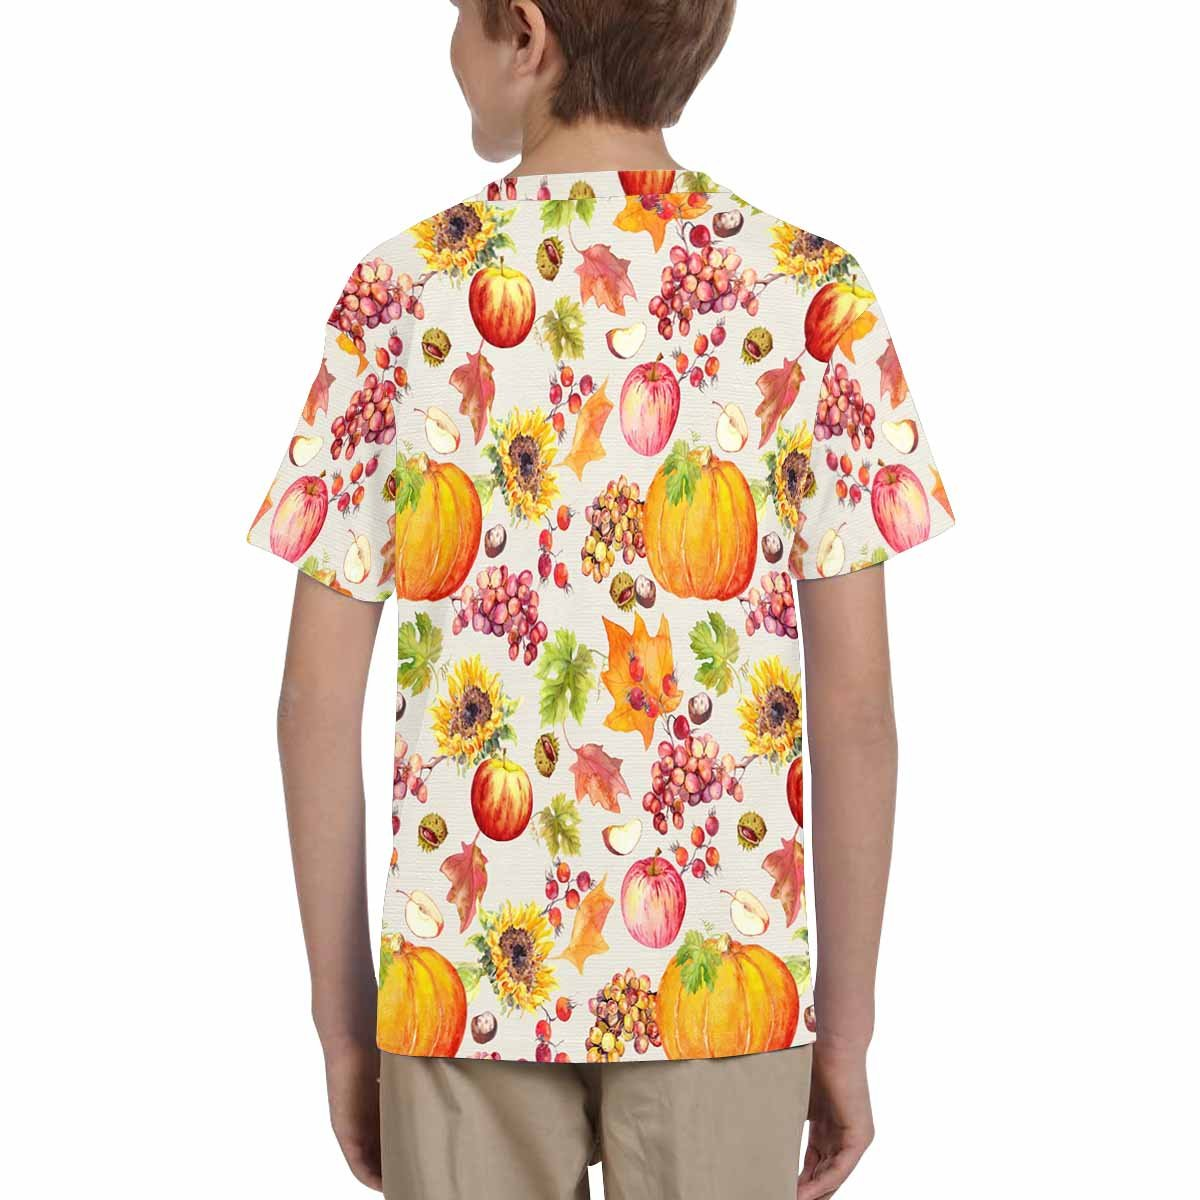 INTERESTPRINT Kids T-Shirts Fruits and Vegetables with Autumn Leaves Watercolor XS-XL